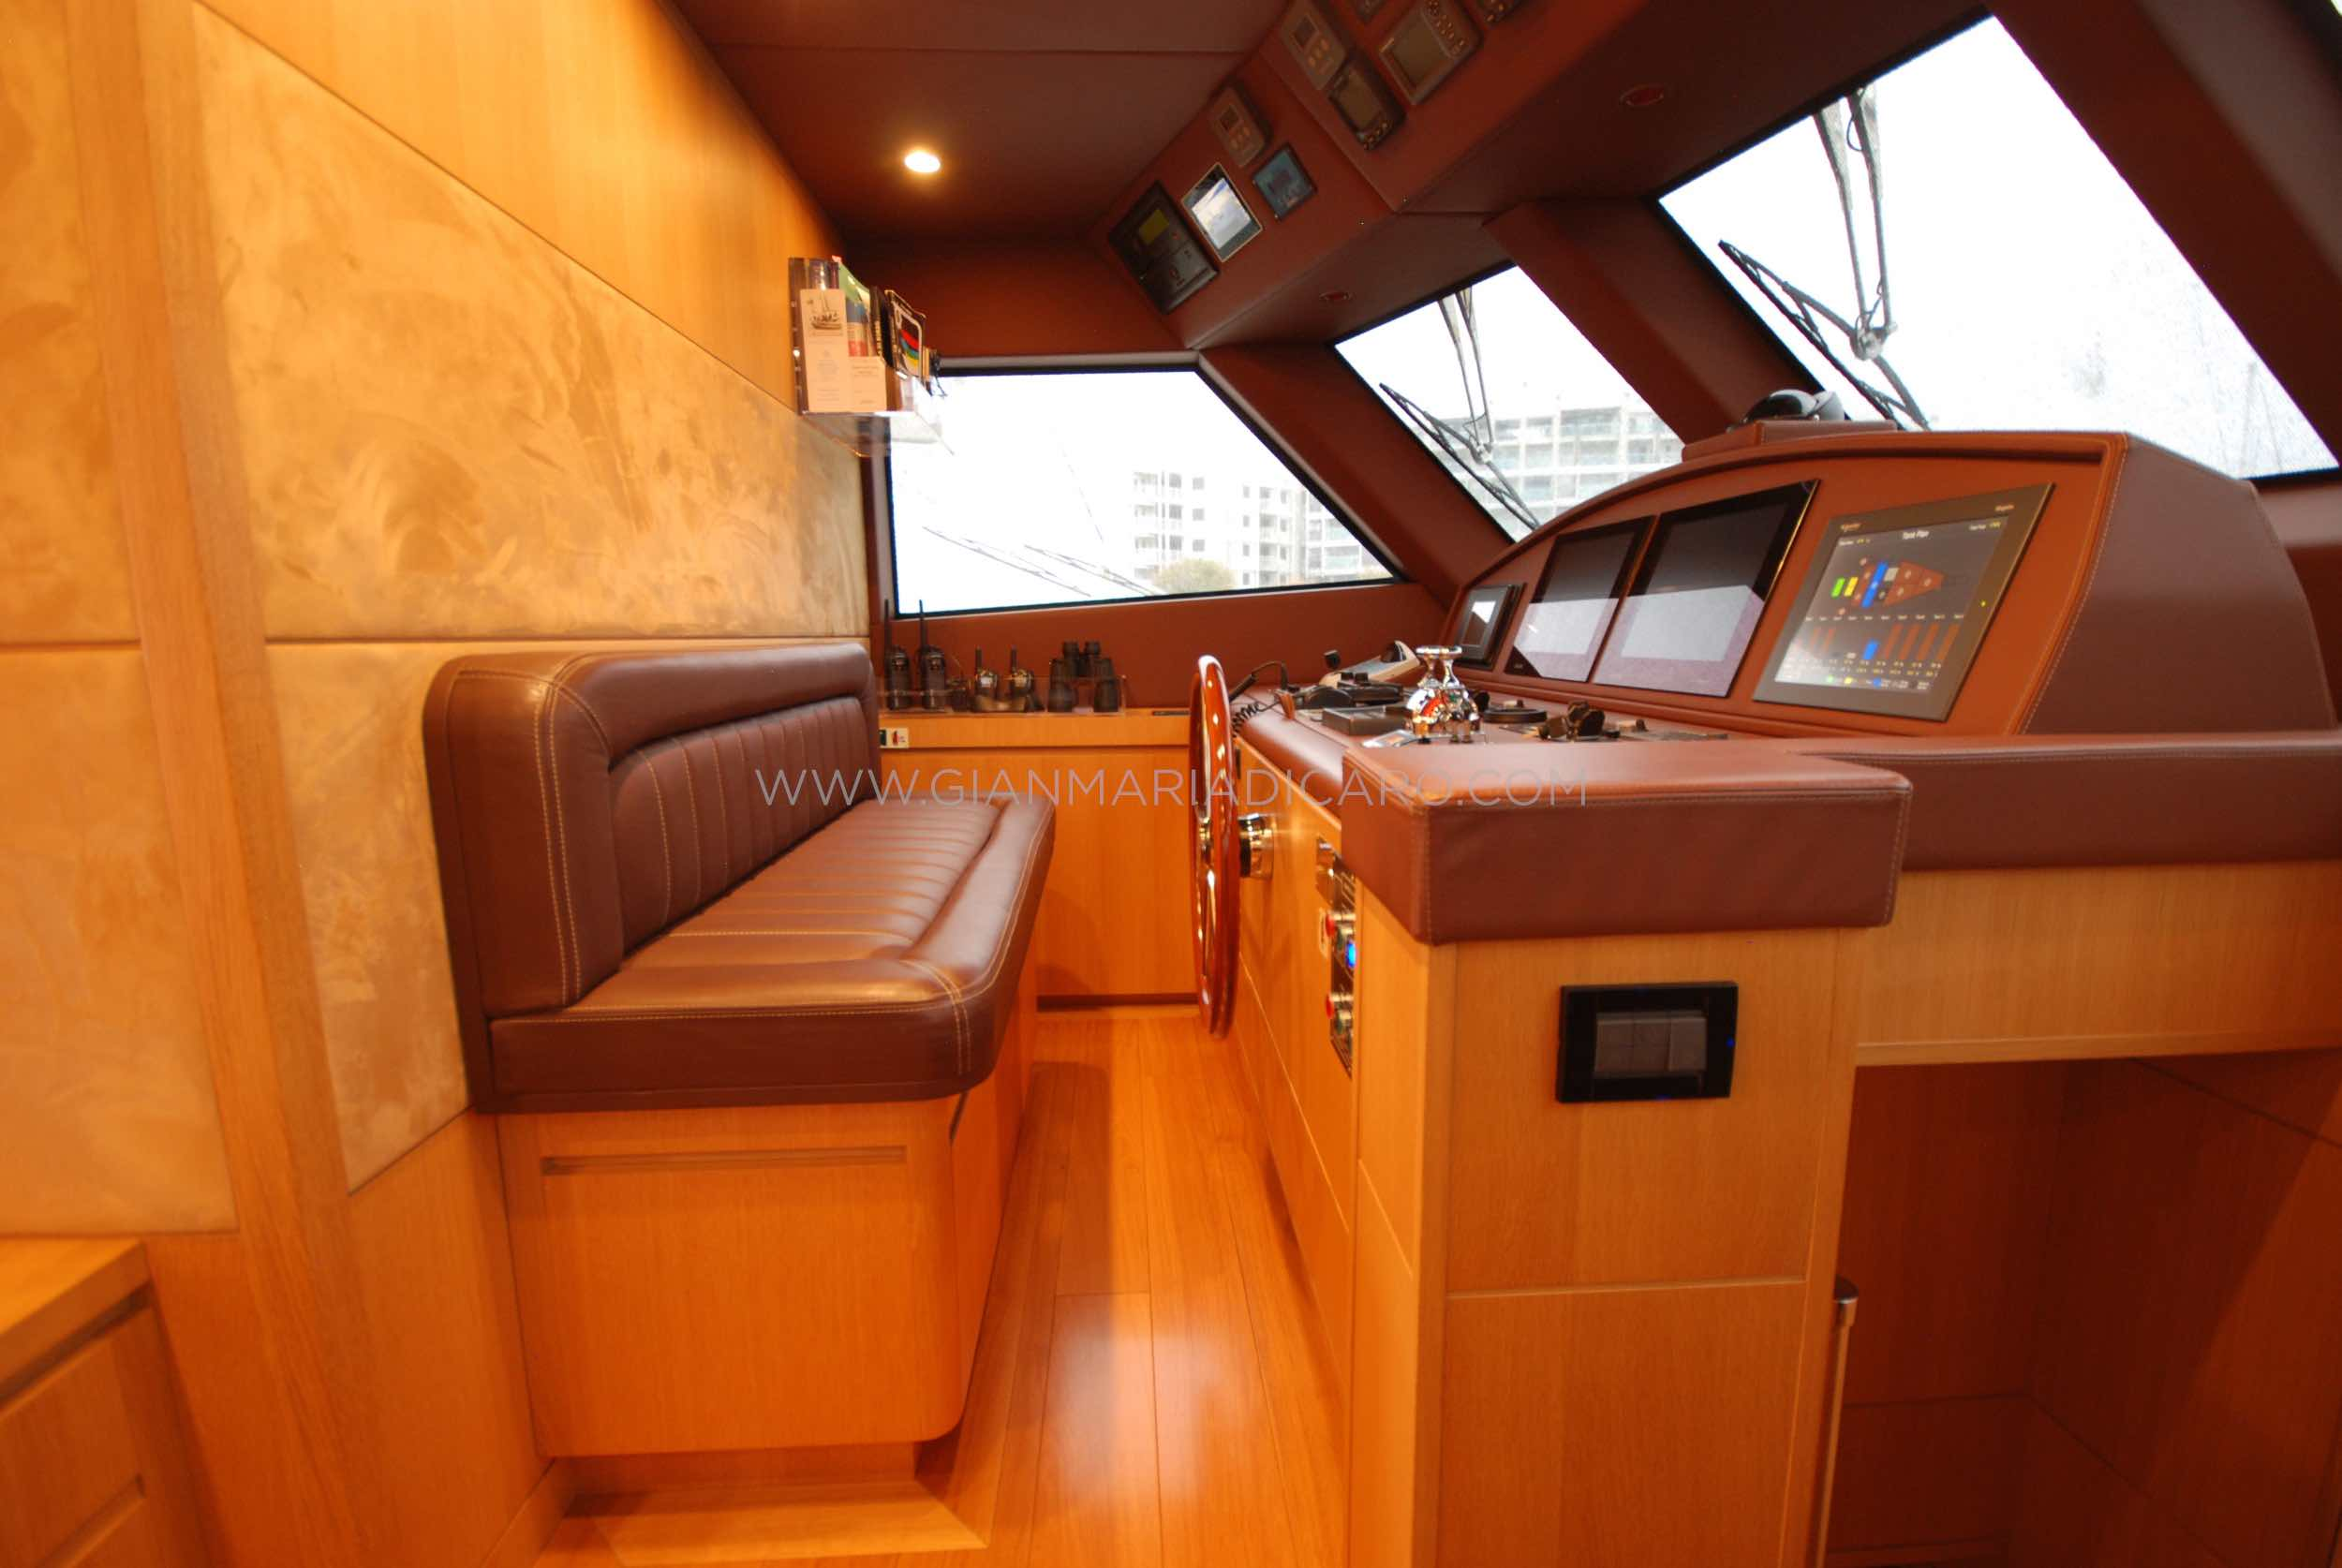 emys-yacht-22-unica-for-sale-151.jpg